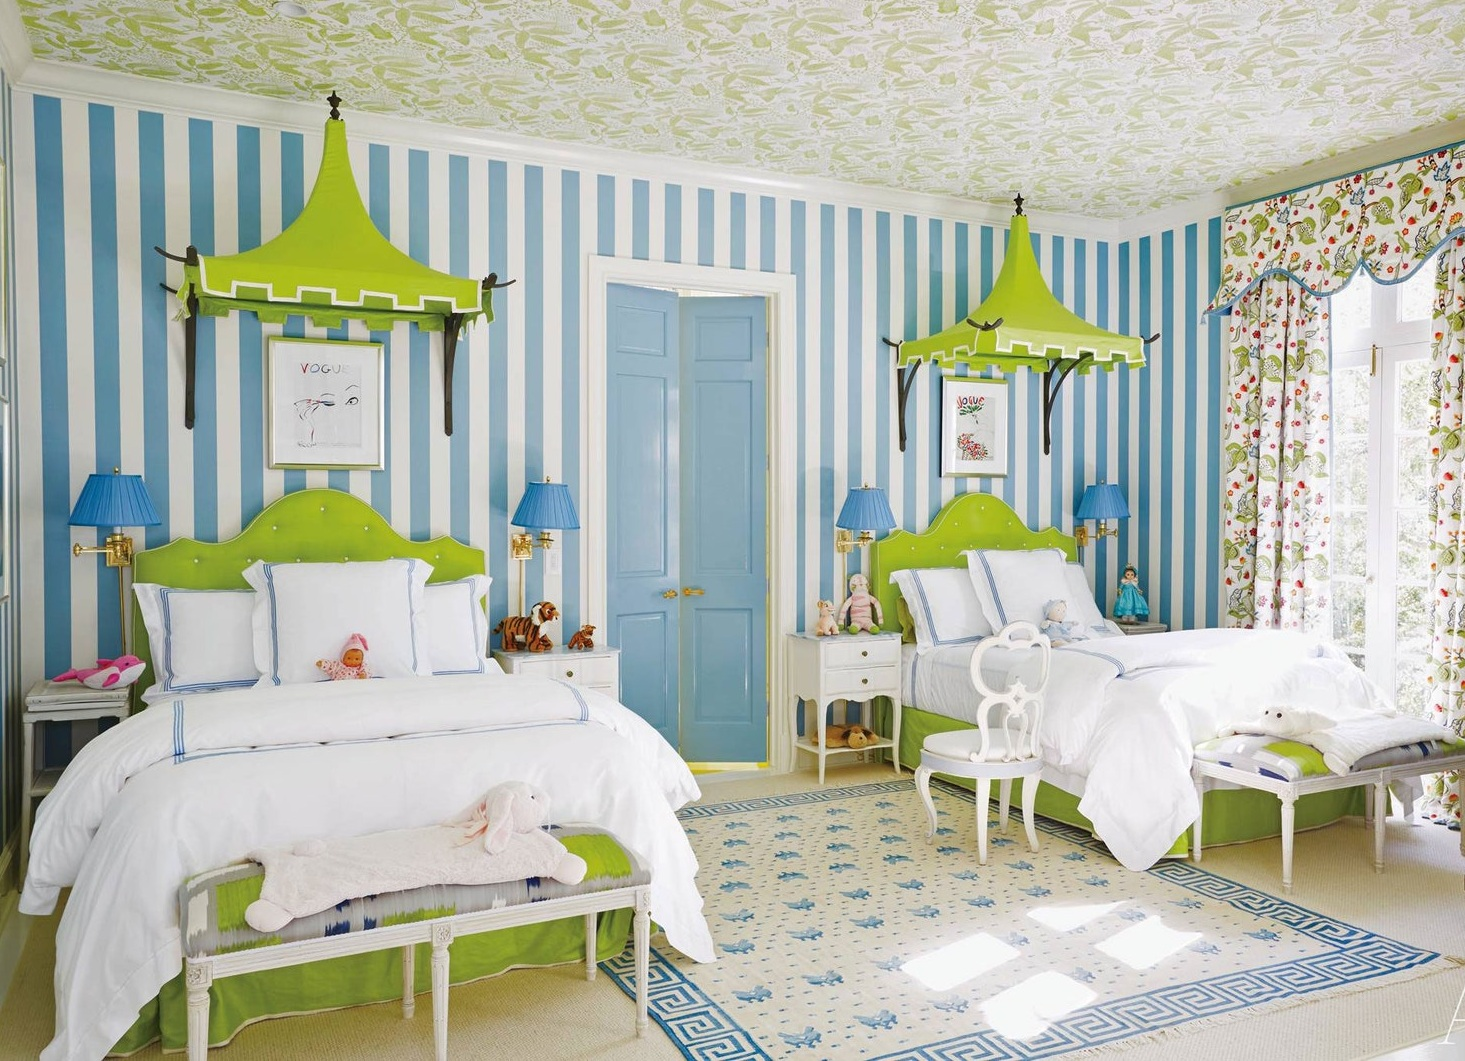 Amazing Green and Blue Theme Kids Twin Bed With Pretty Curtains and Rug To Beautify Your Room